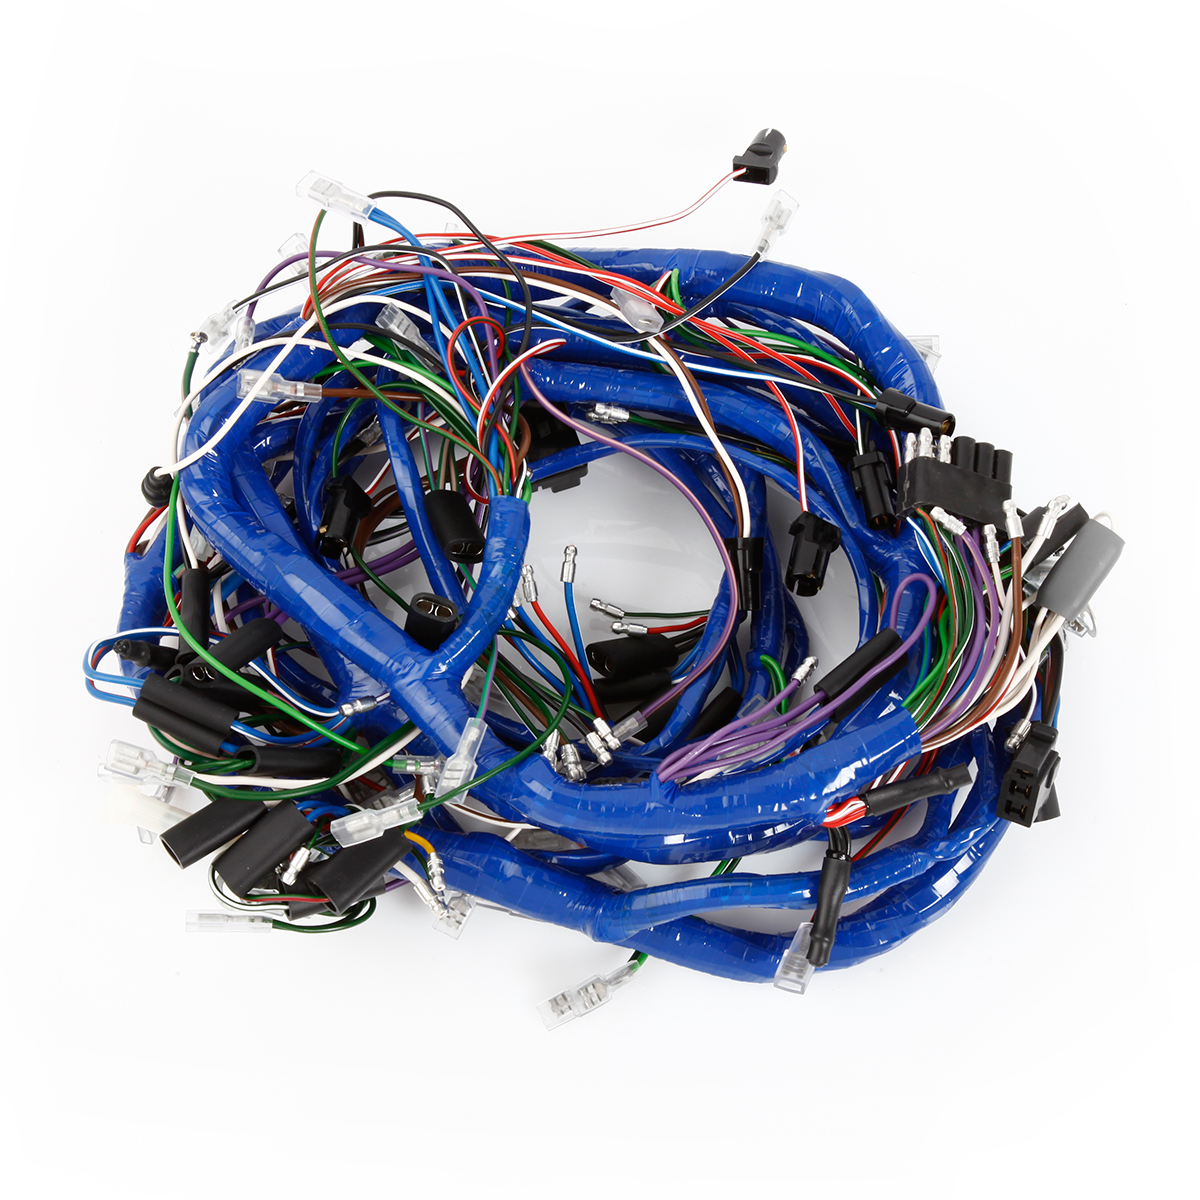 hight resolution of late harness pvc insulated wires with pvc wrapped cover